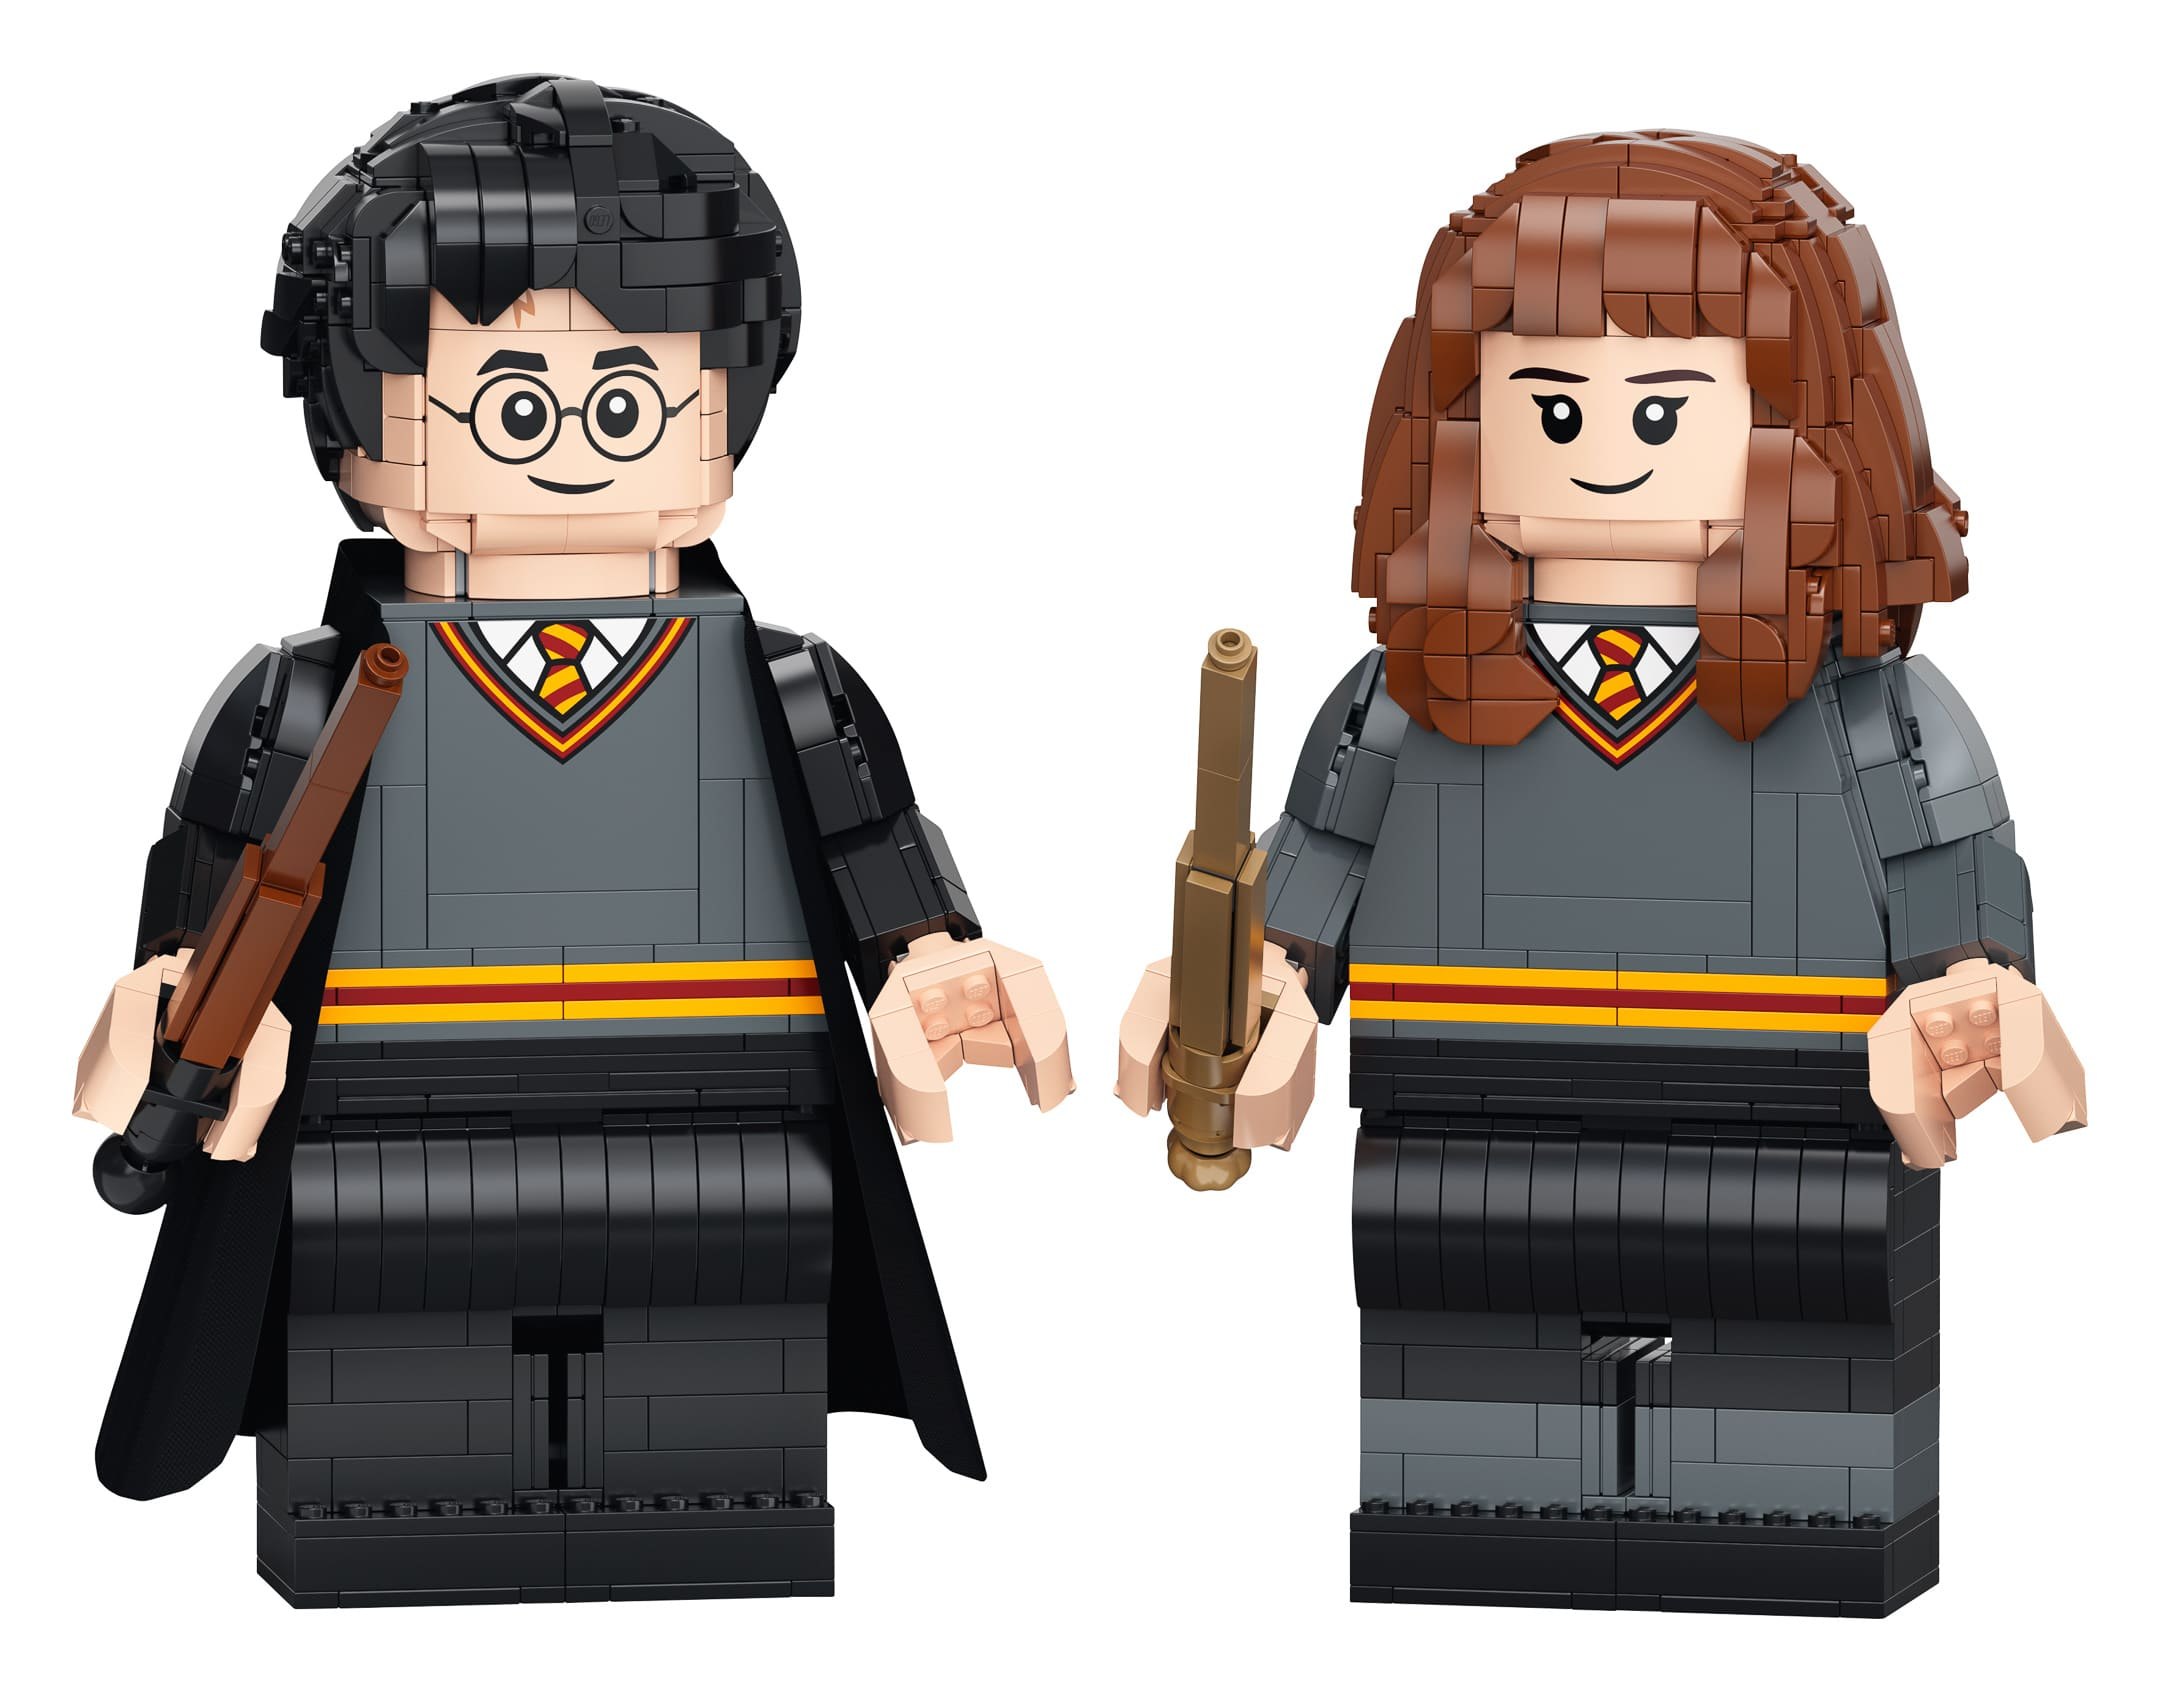 LEGO Harry Potter marks its 20th anniversary with 8 new sets 18